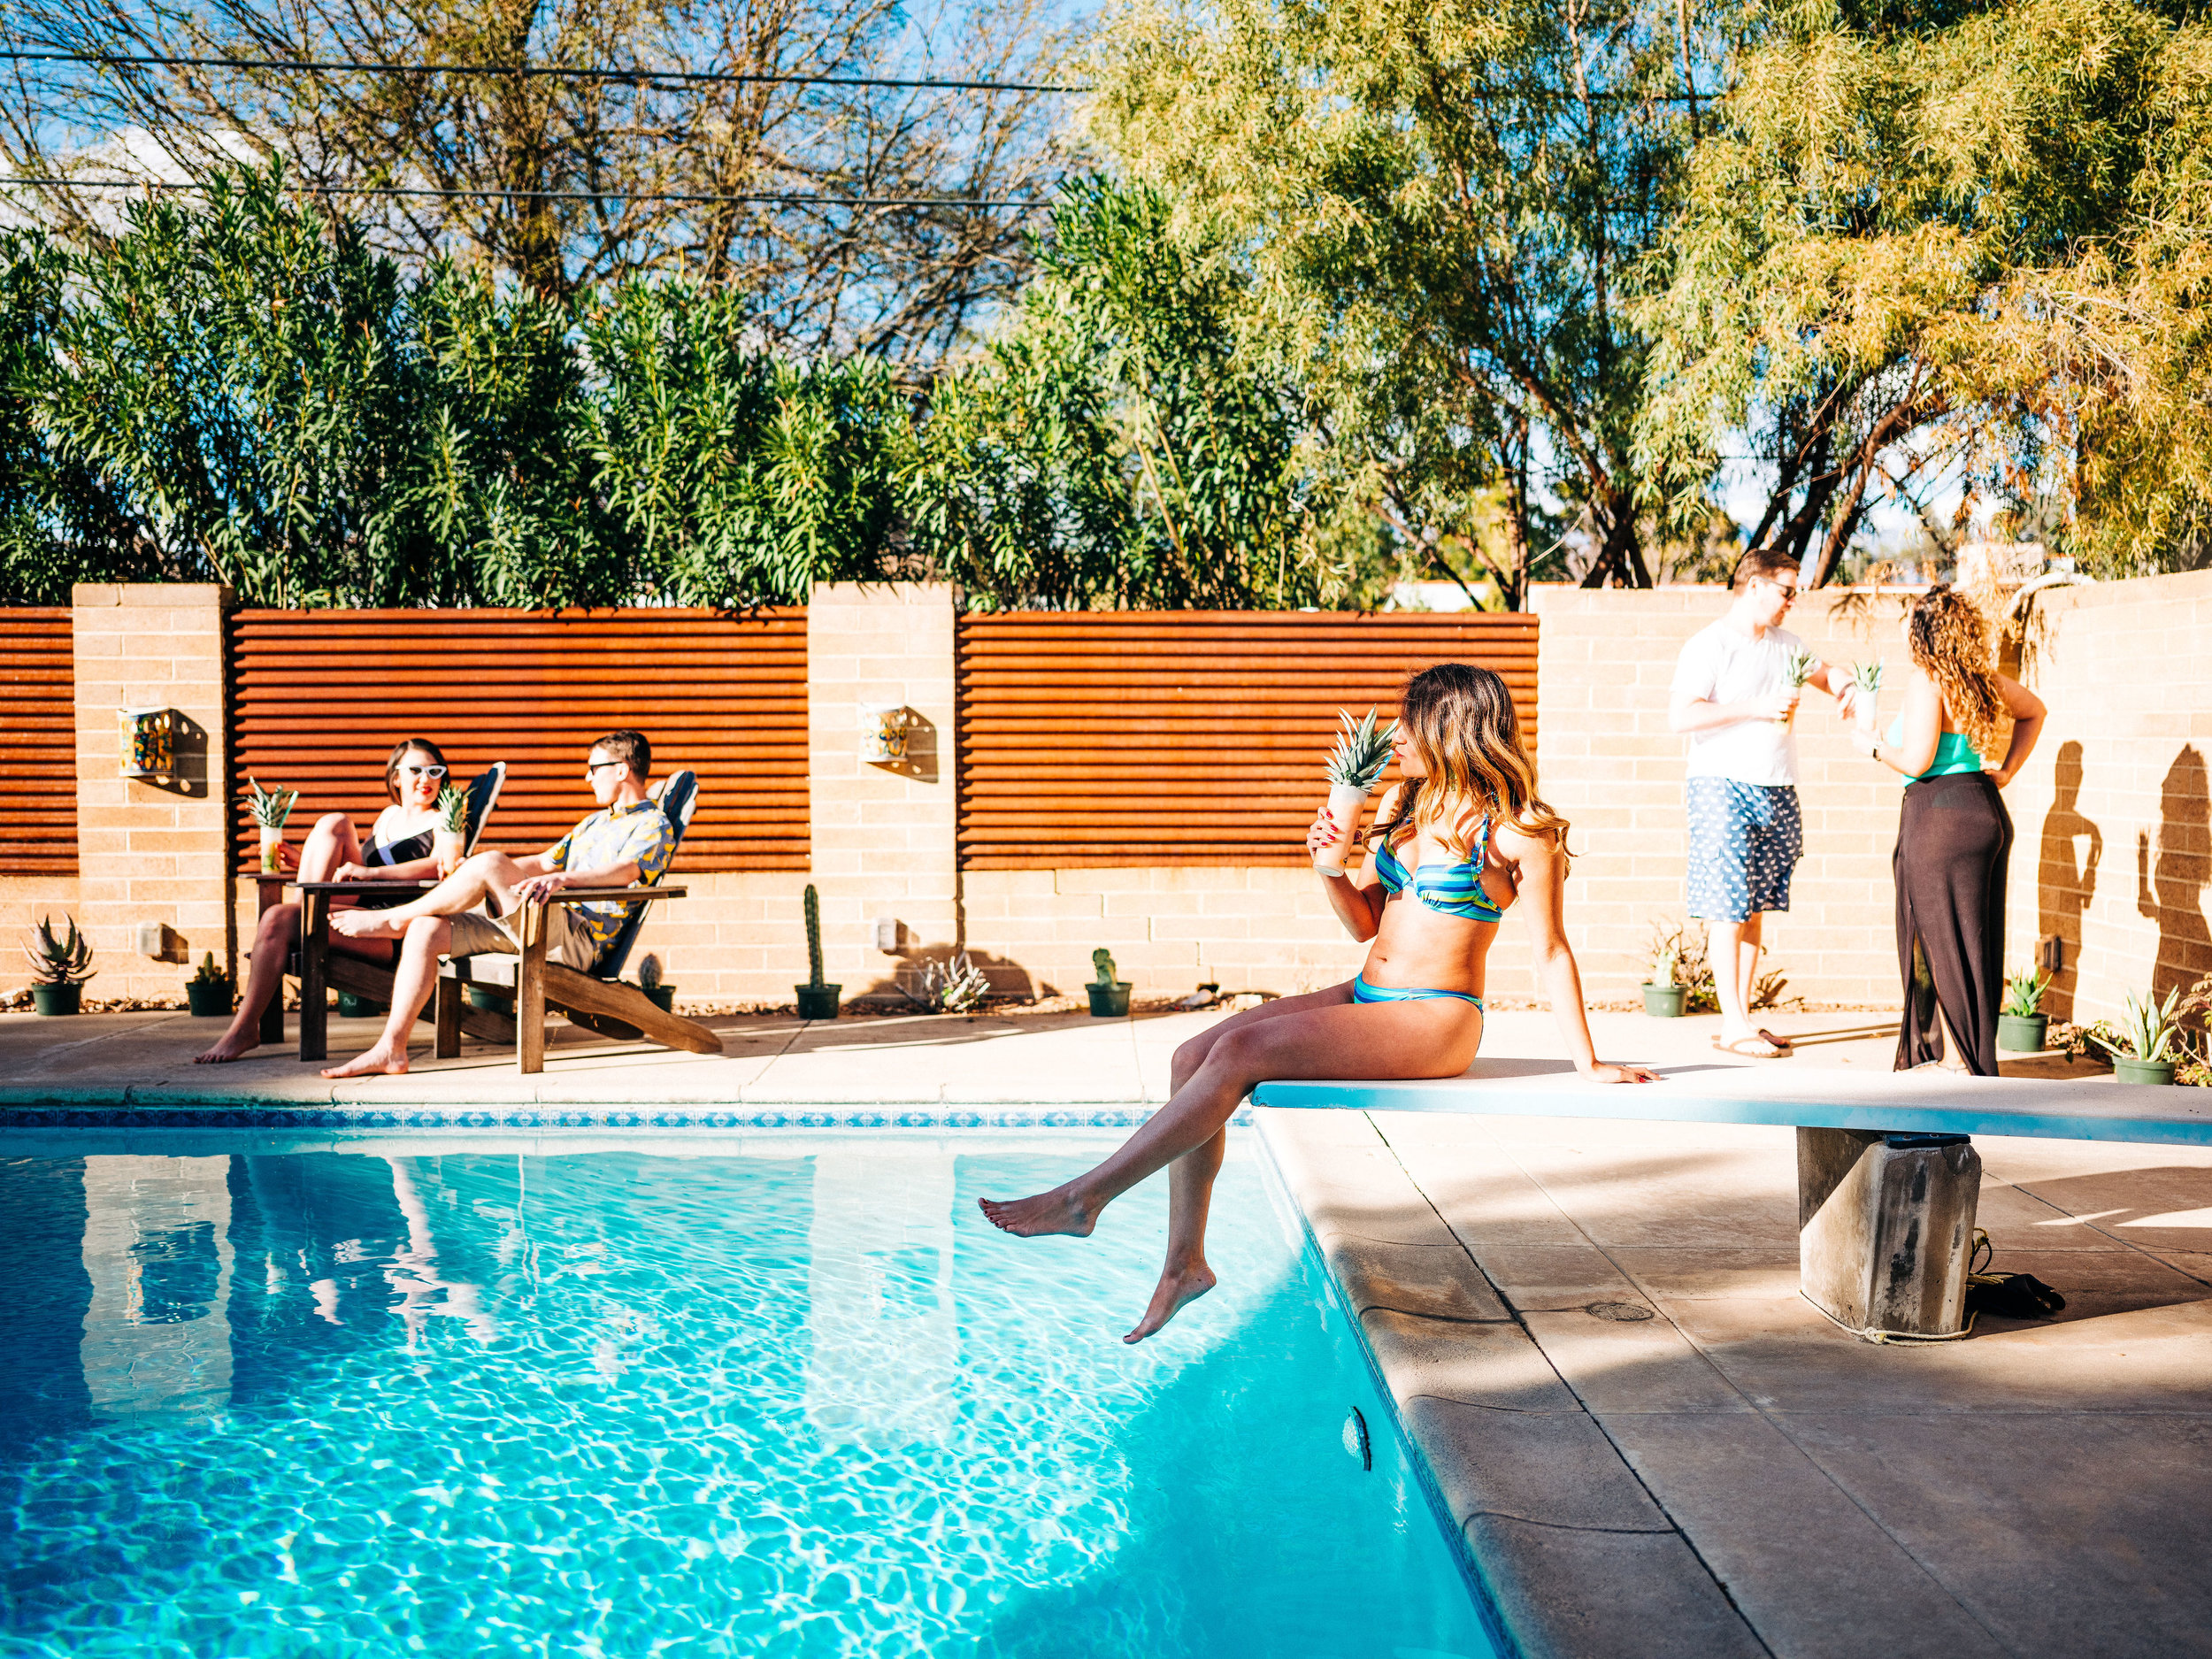 Andy-Shepard-Photography-Tucson-Pool-Party-53.jpg